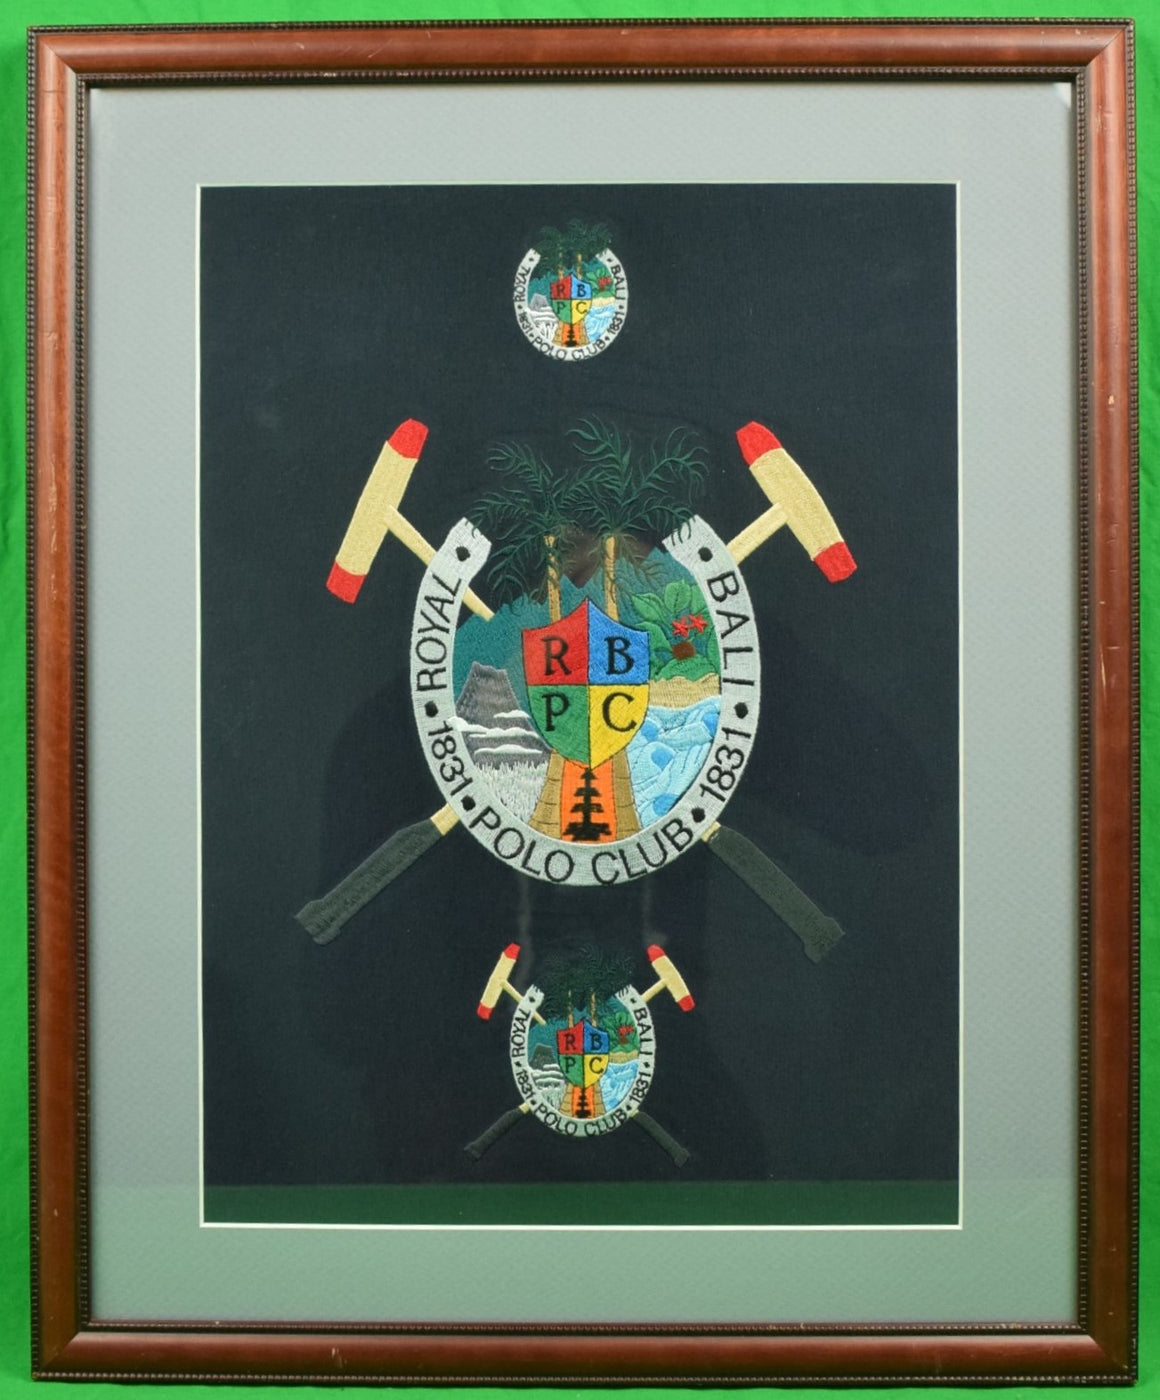 """Royal Bali Polo Club 1831 Framed Embroidered w/ X'd Mallets Crest"""